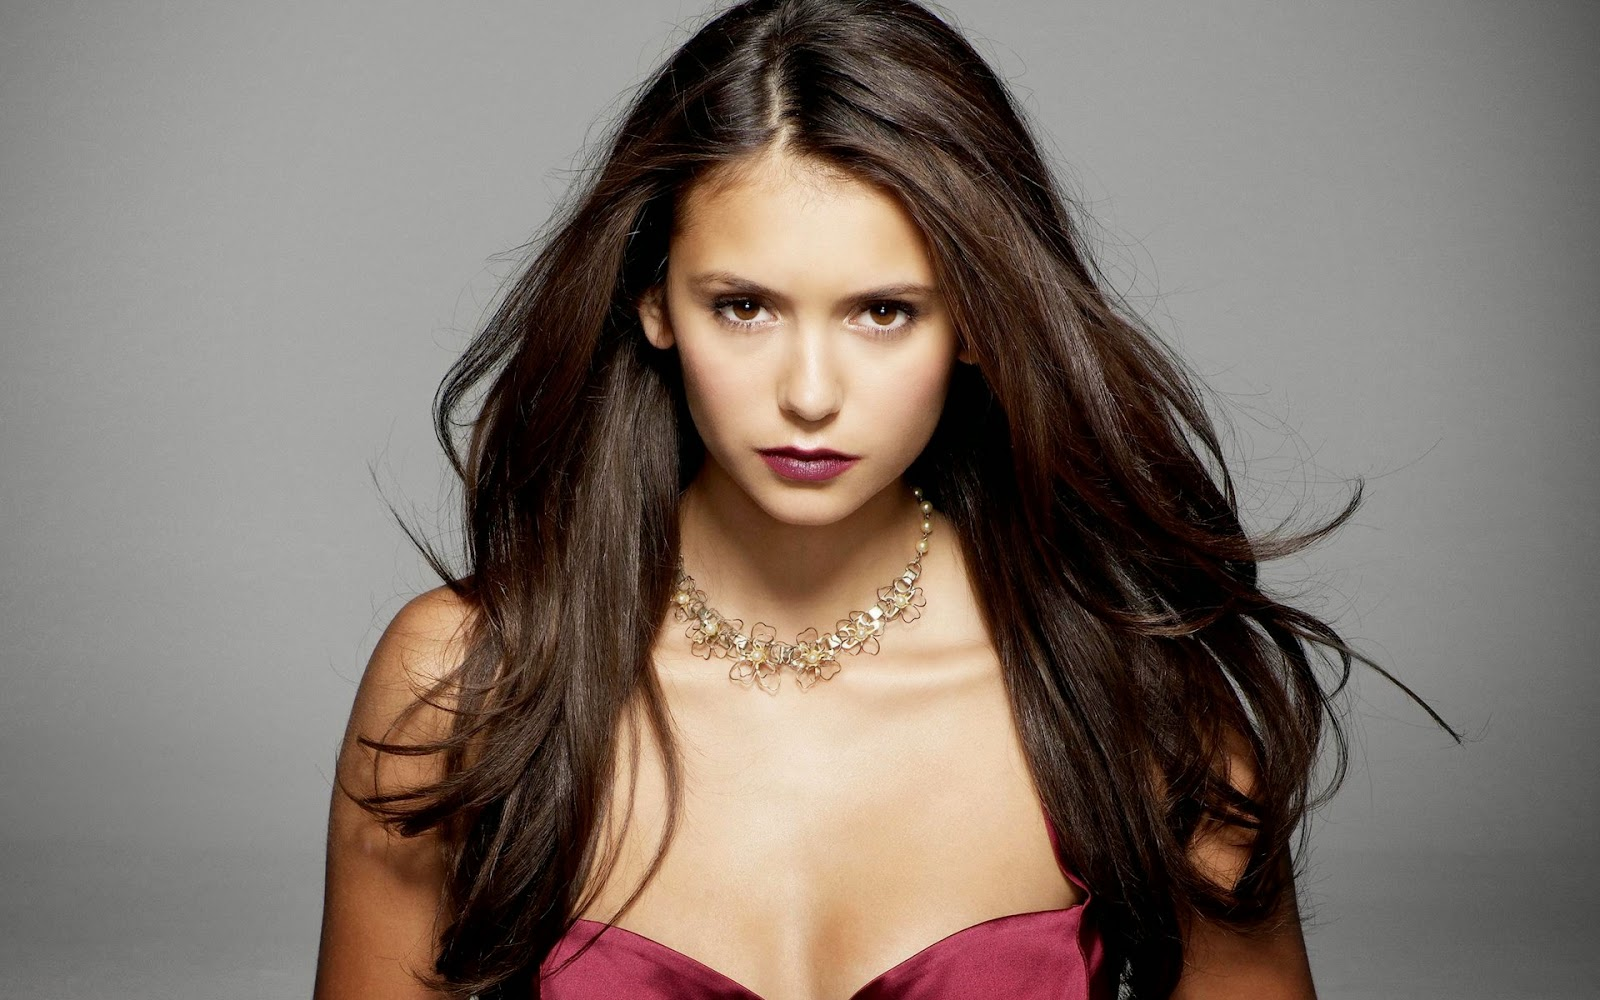 nina dobrev full hd - photo #14